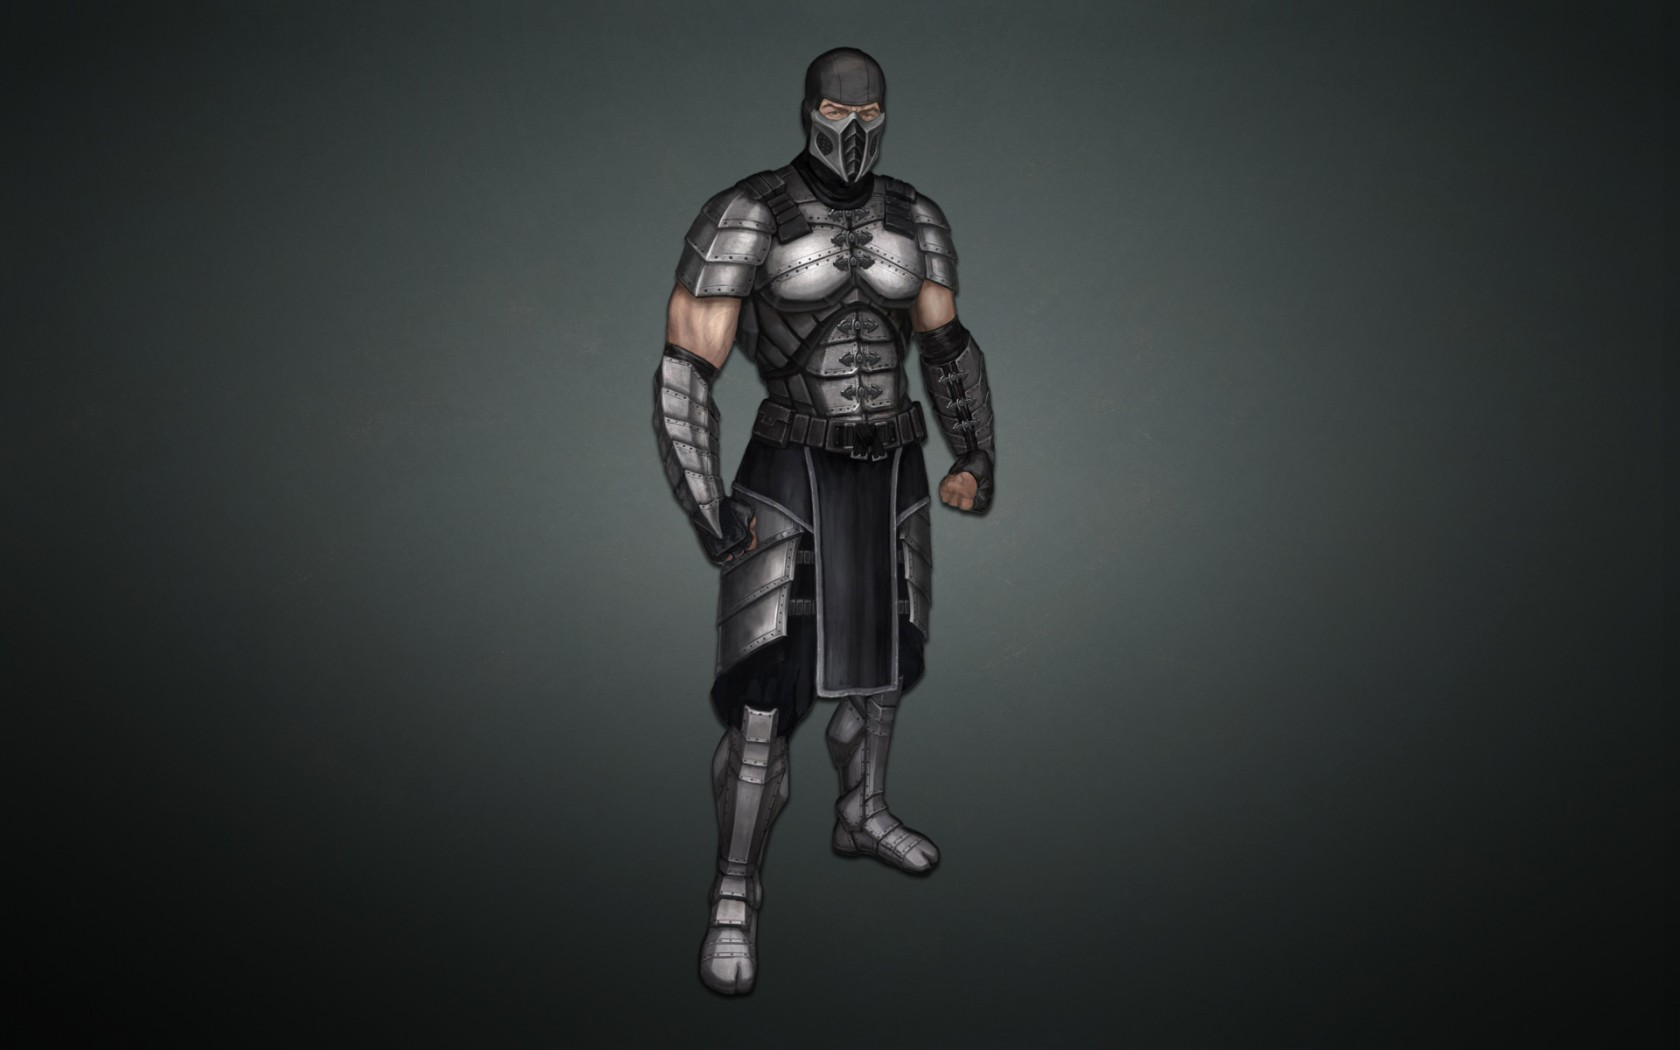 Mortal Kombat wallpaper Noob Saibot 4